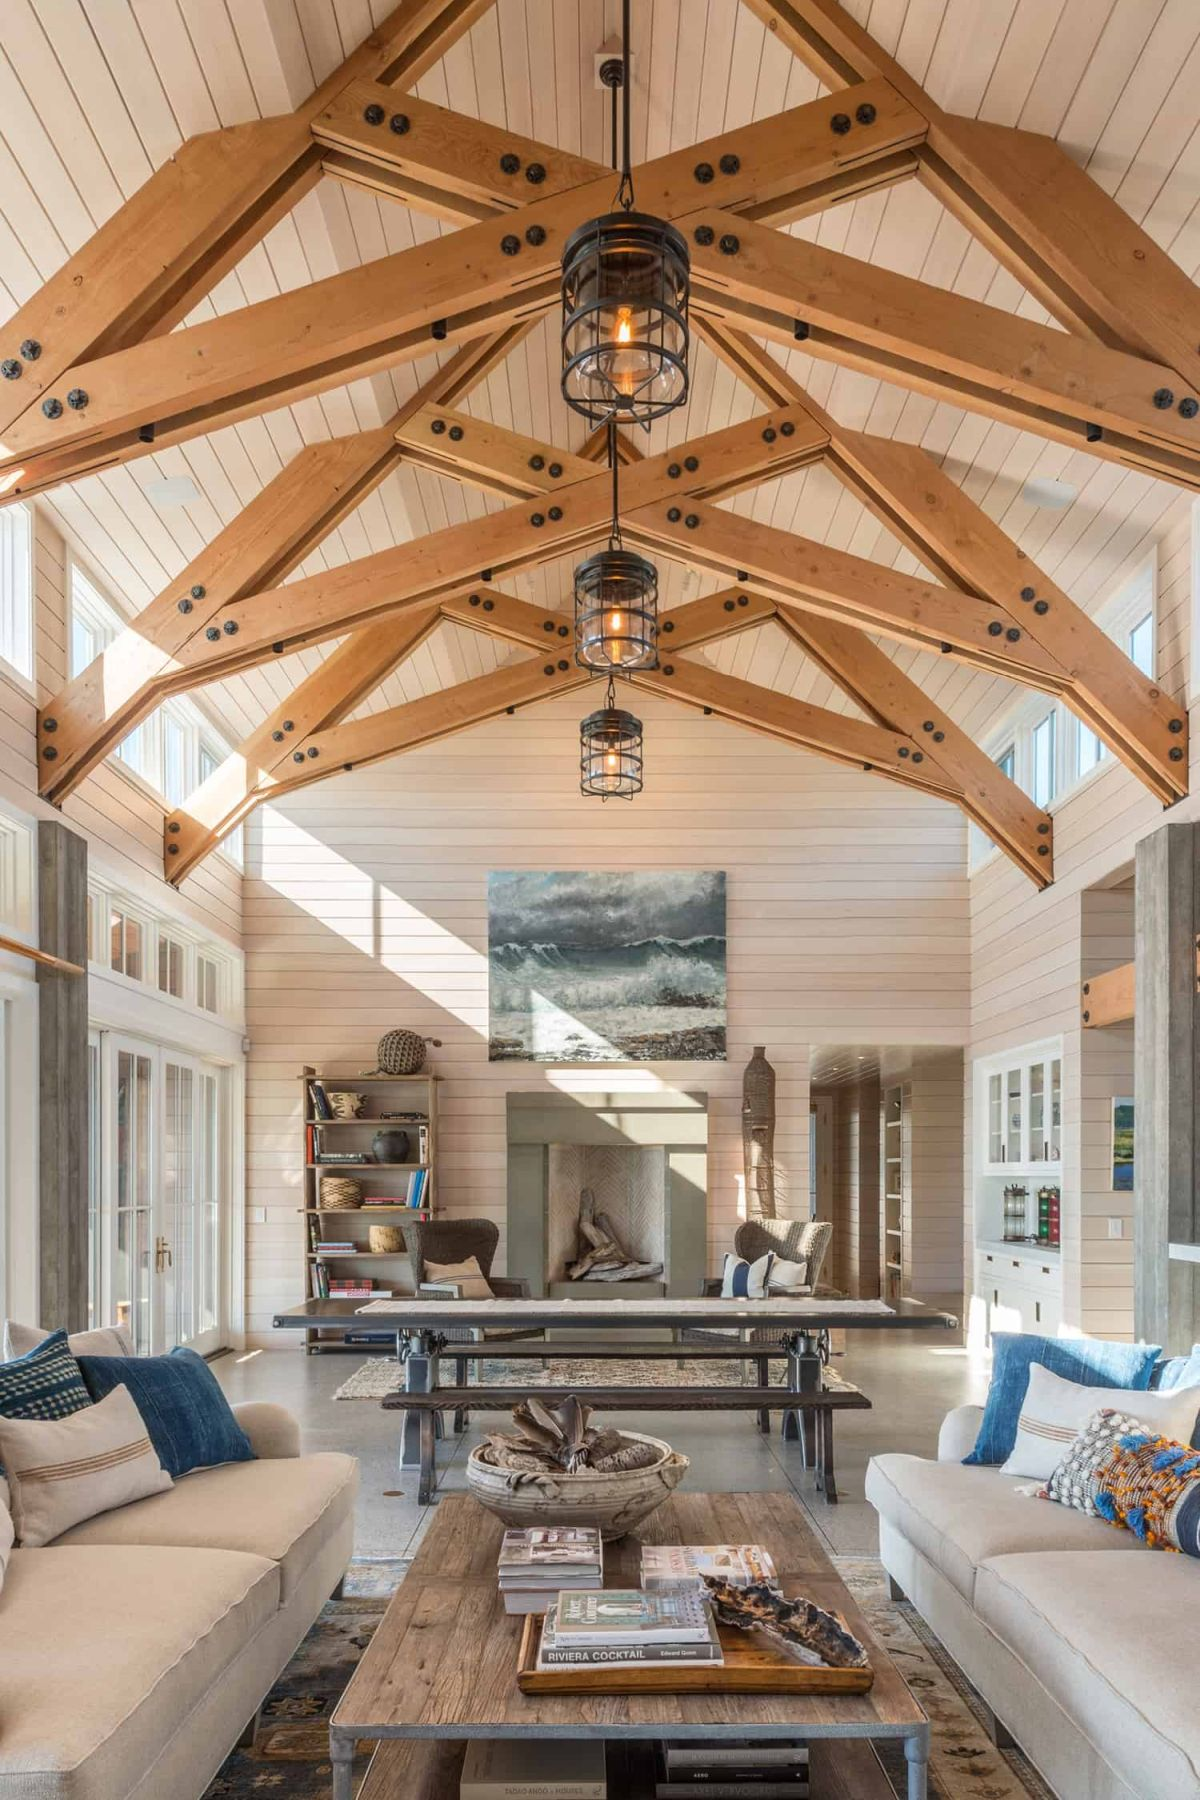 The ceiling beams stand out and contrast with the whitewashed spruce cladding on the walls and ceiling